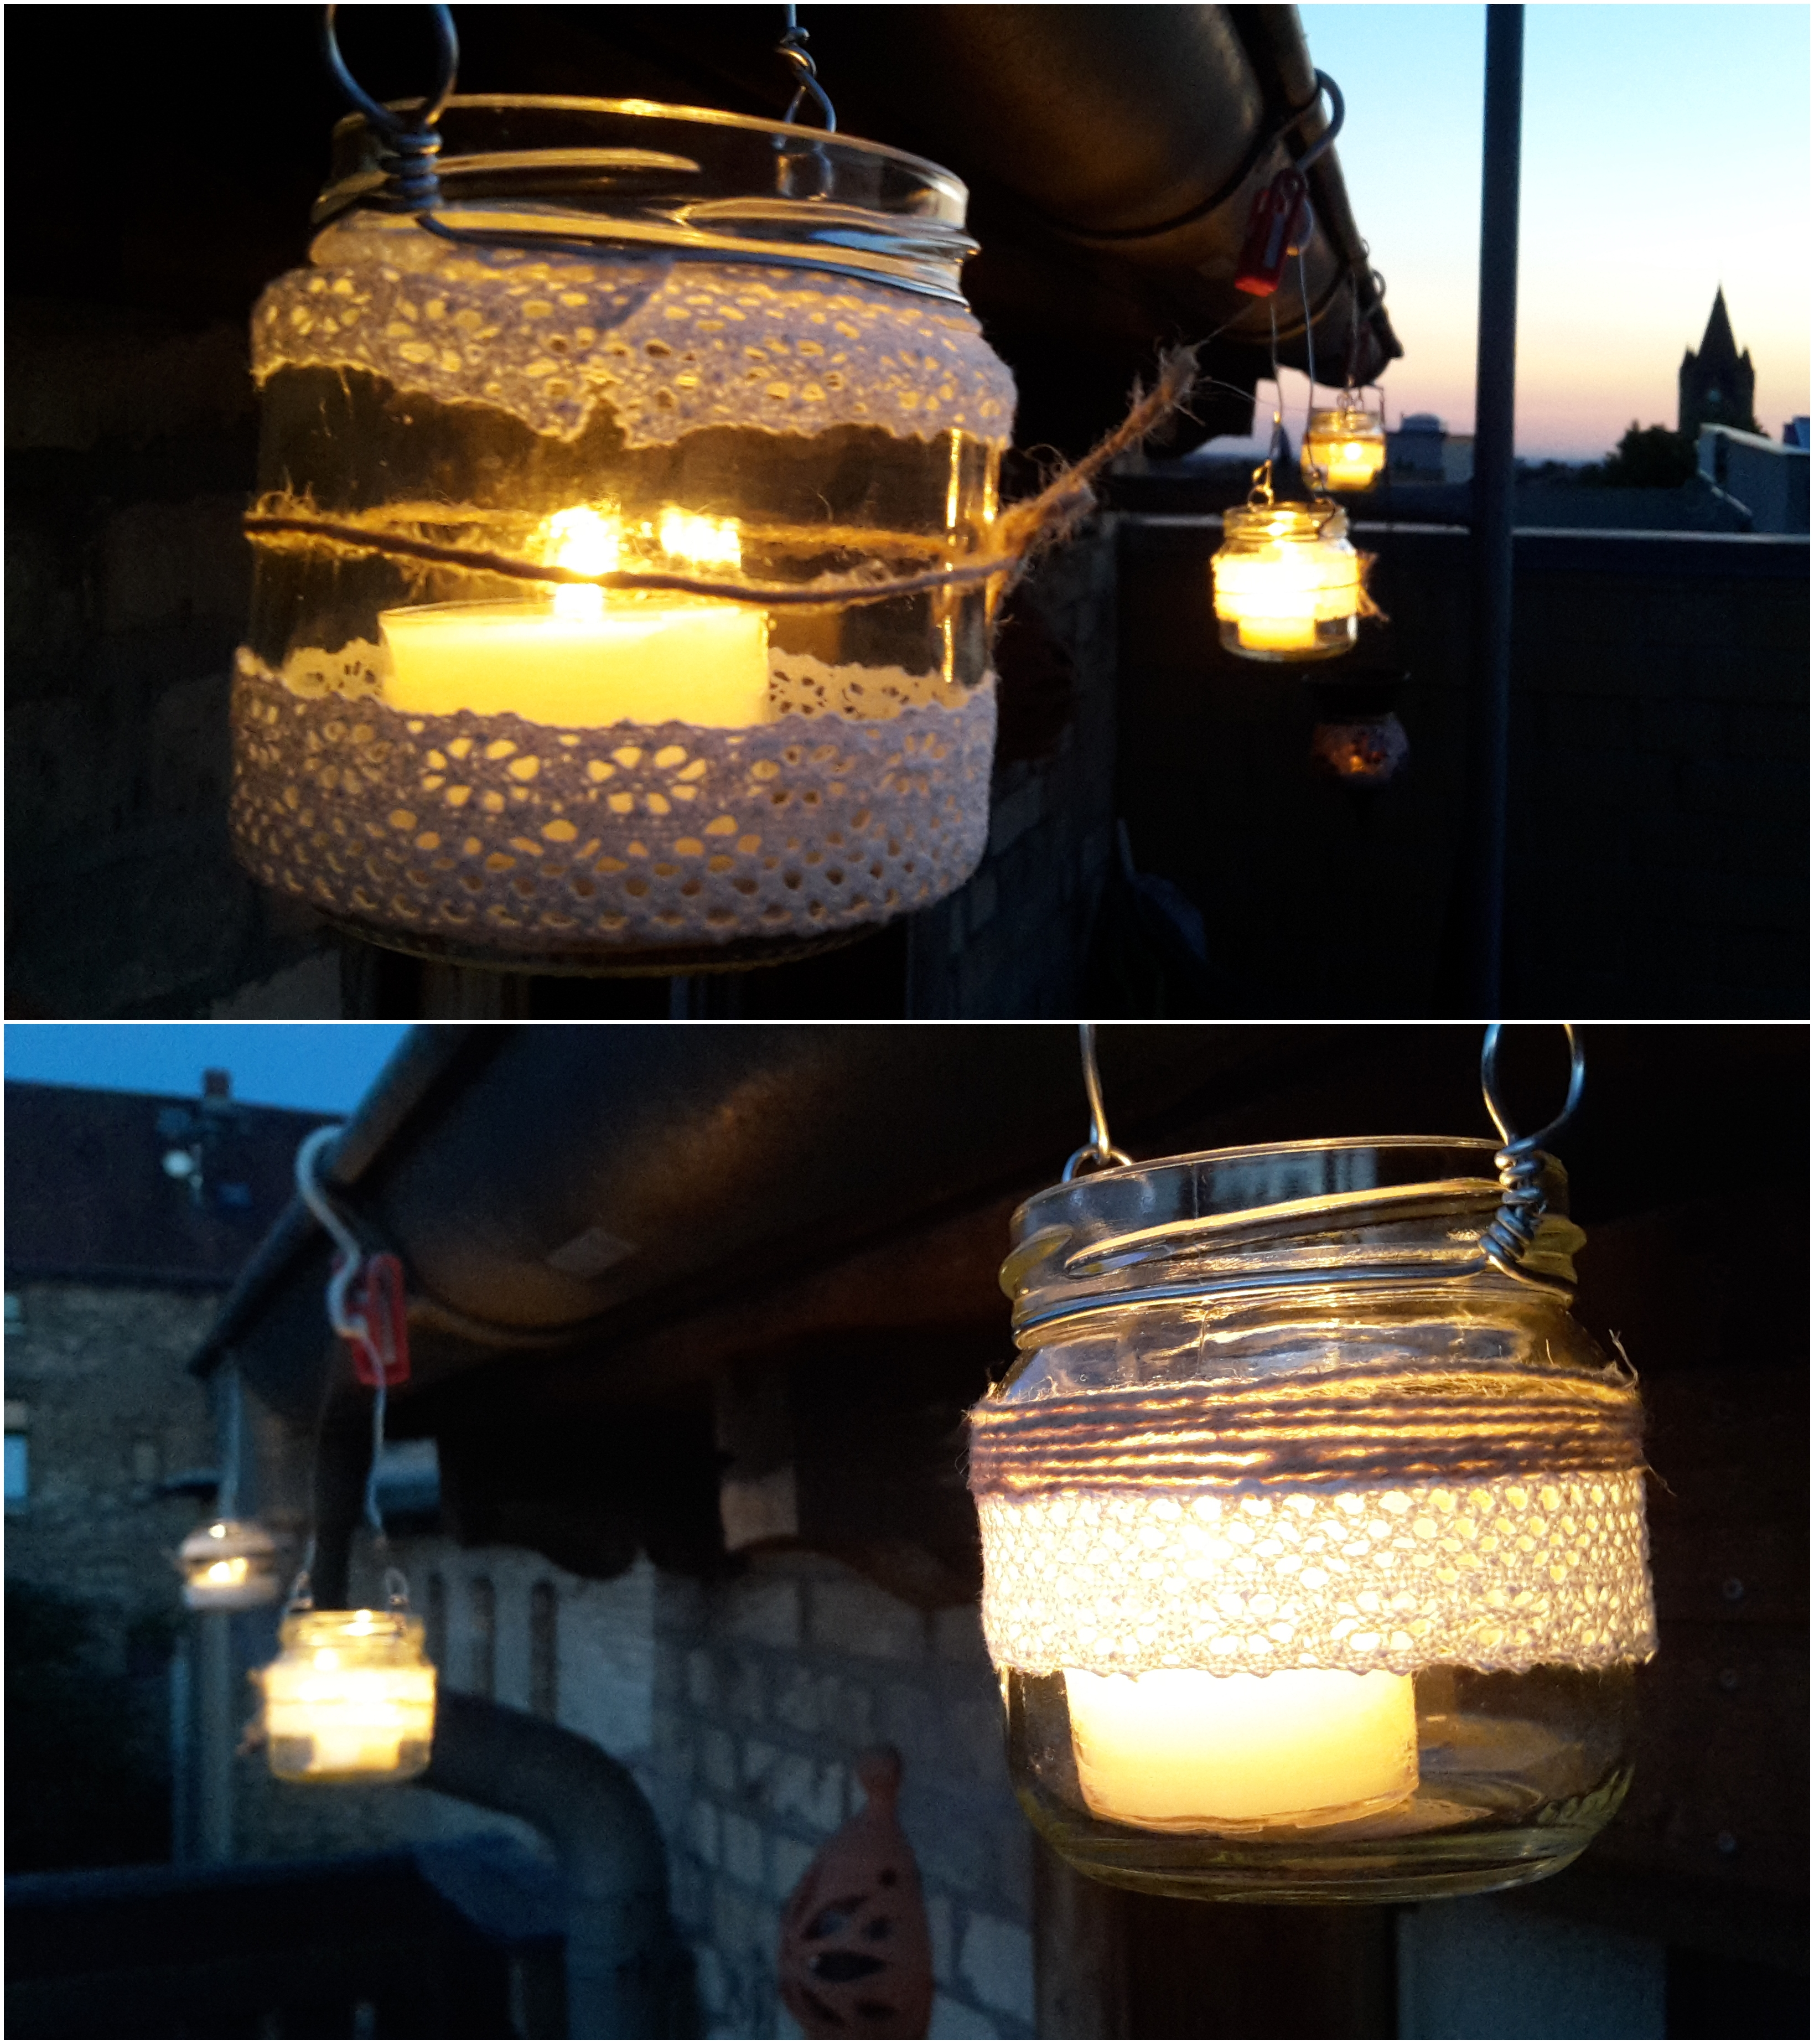 HOW TO HANG UP JARS